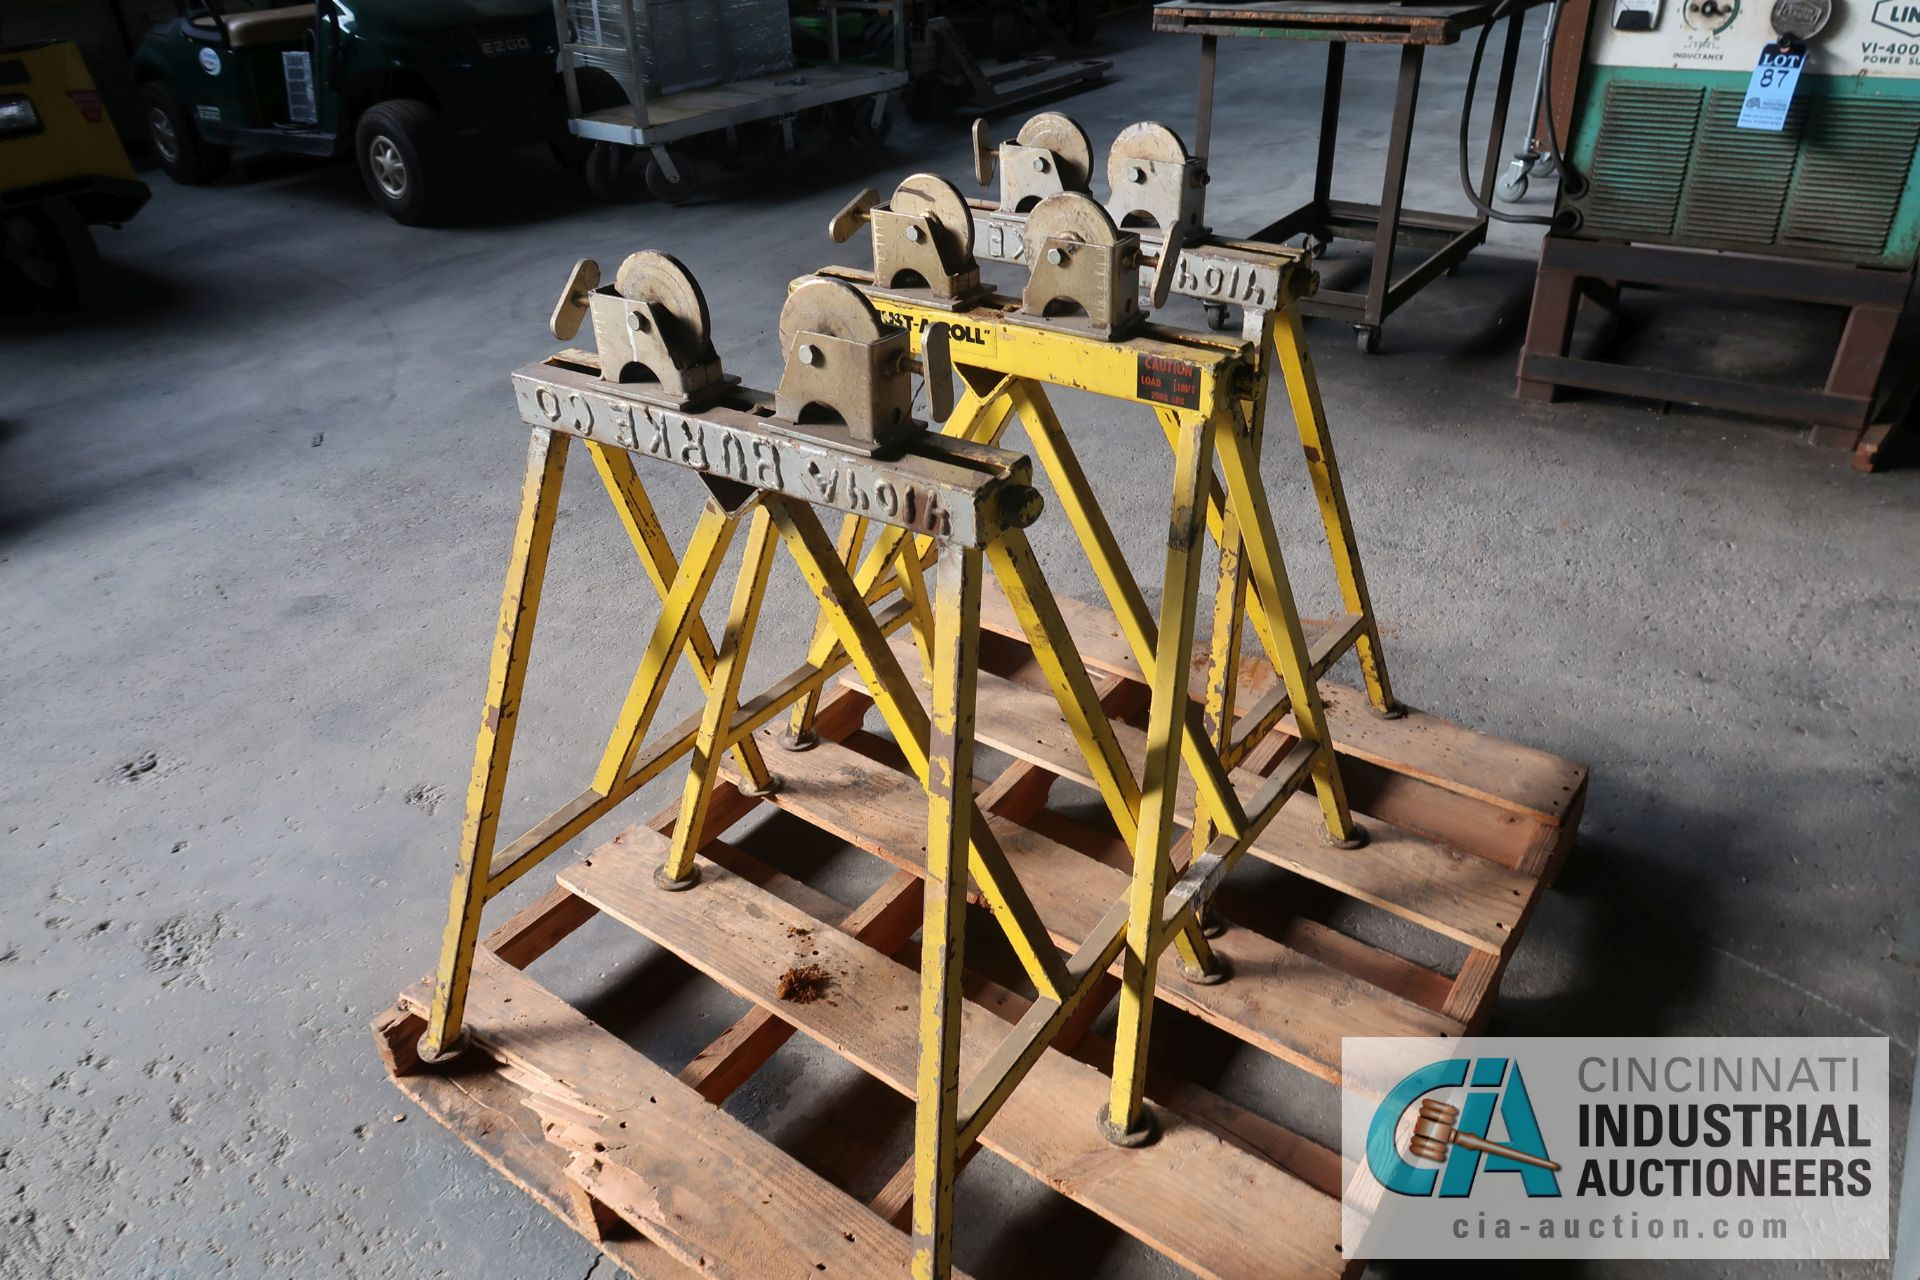 2,000 LB. CAPACITY SUMNER ADJUST-A ROLL STEEL WHEEL ROLLER STANDS